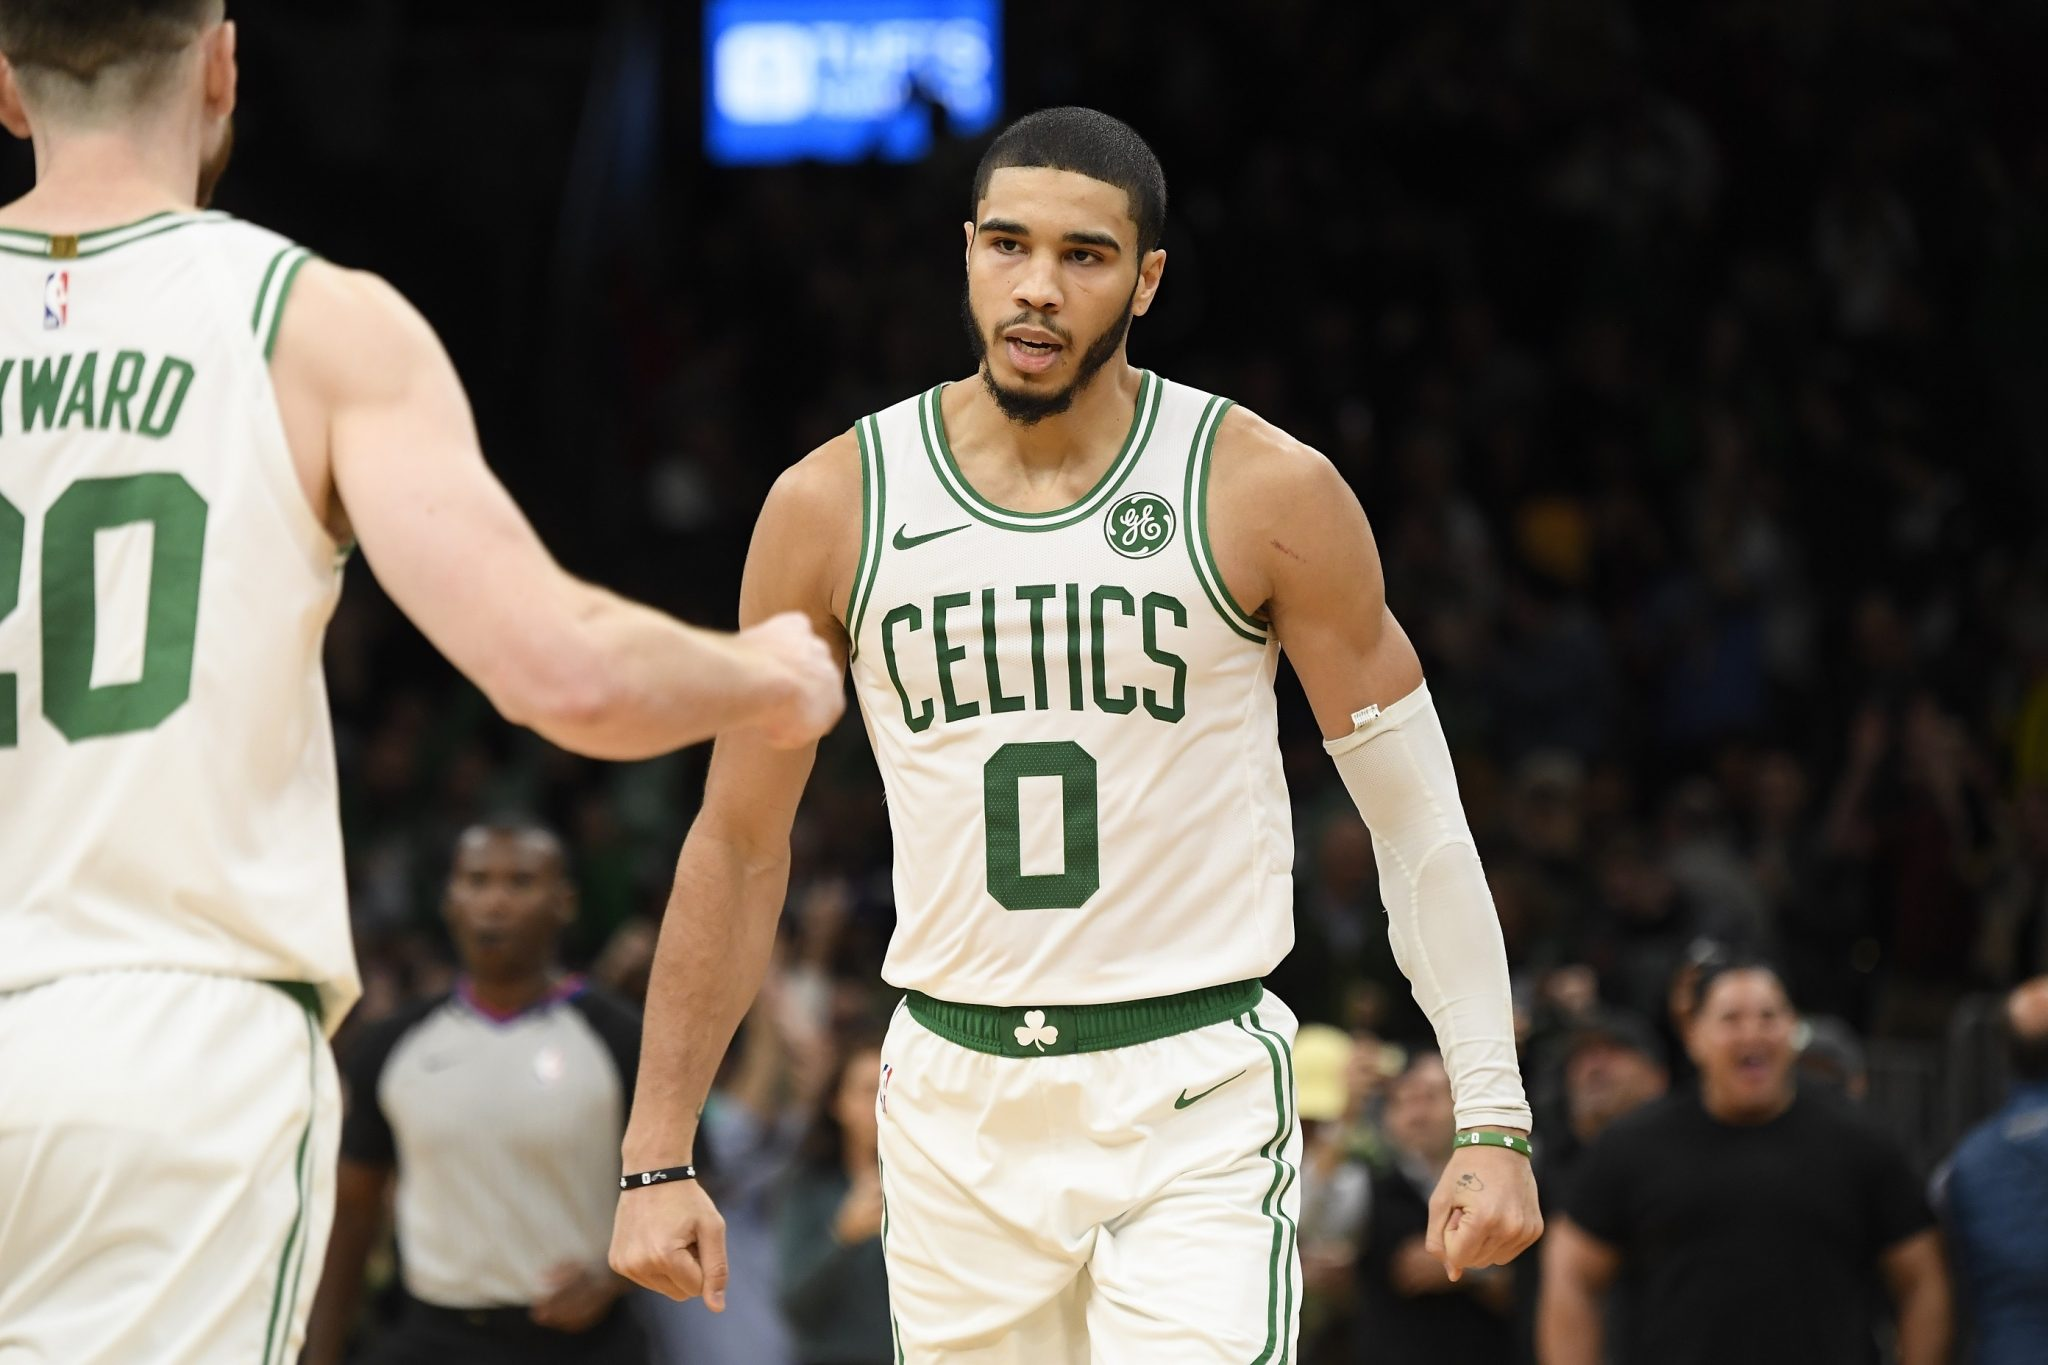 BOSTON, MA - NOVEMBER 1: Jayson Tatum #0 of the Boston Celtics celebrates after making the game winning basket against the New York Knicks on November 1, 2019 at the TD Garden in Boston, Massachusetts.  Copyright Notice: Copyright 2019 NBAE  (Photo by Brian Babineau/NBAE via Getty Images)